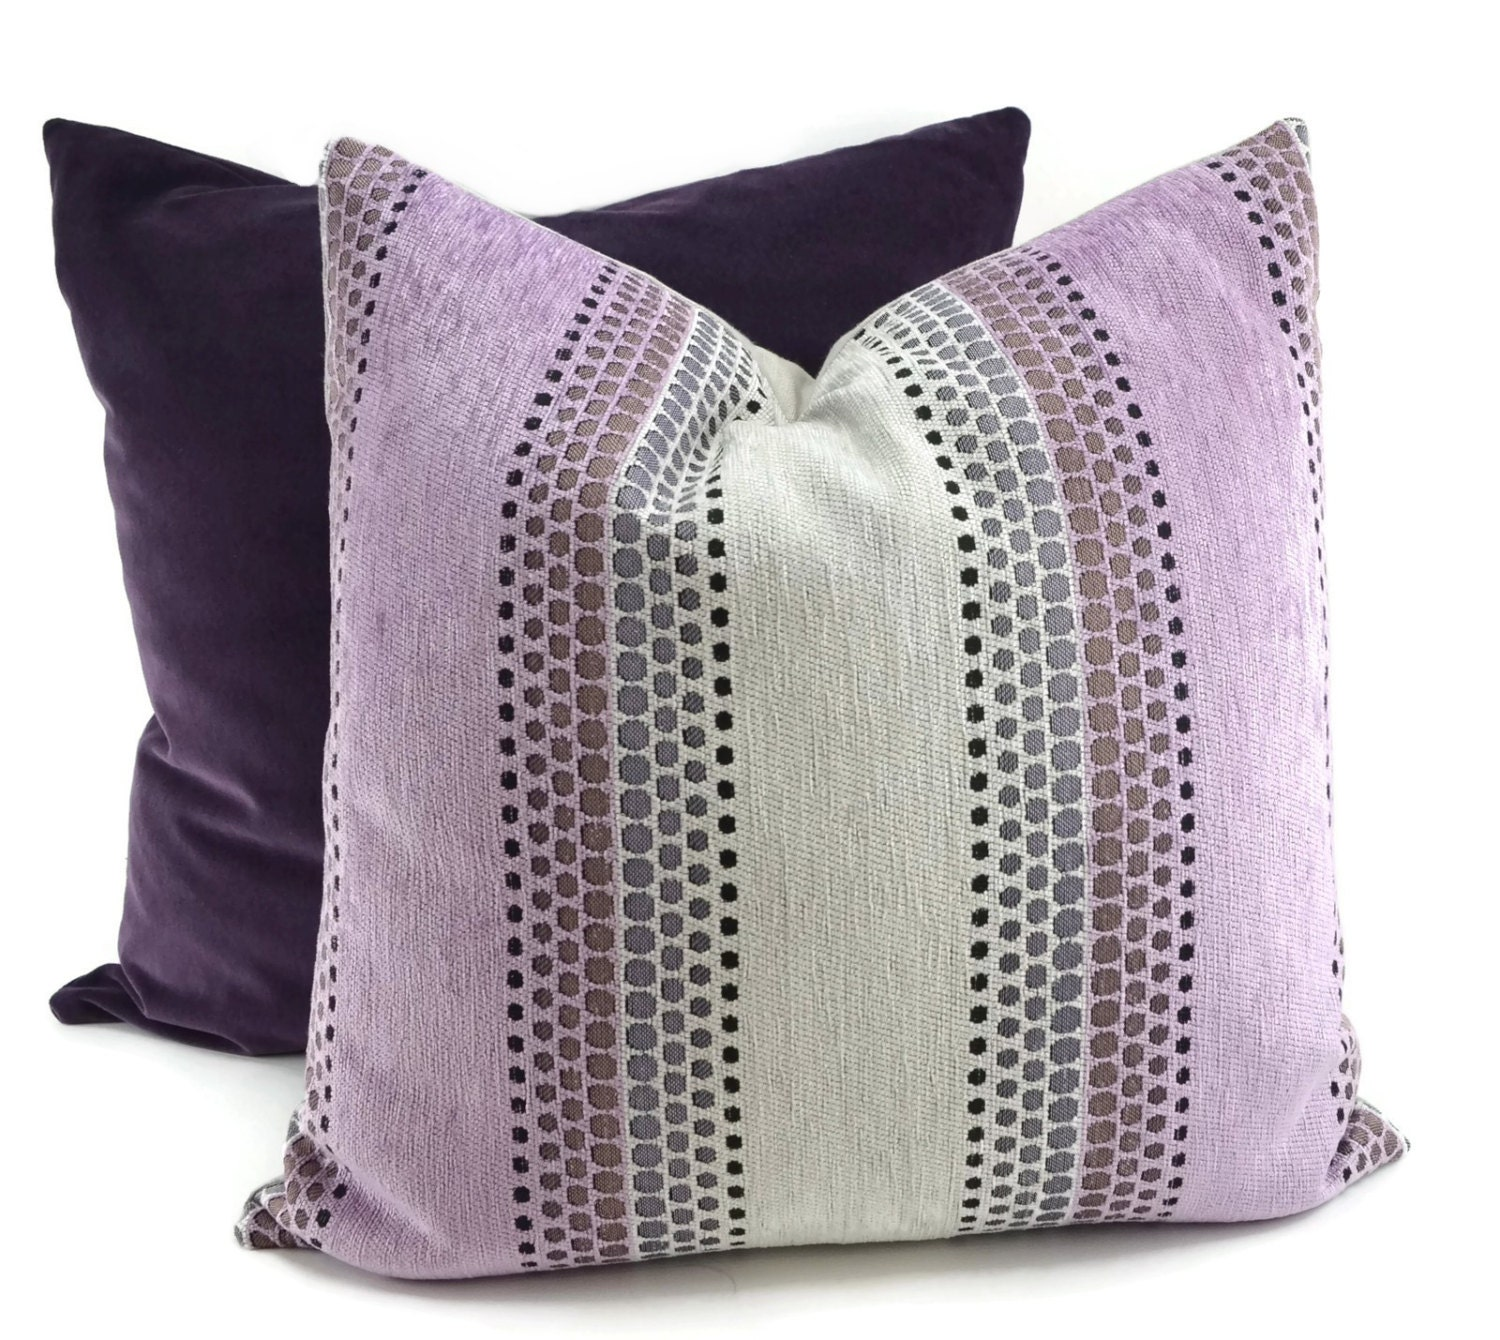 Chenille Throw Pillow Covers : Purple & Gray Chenille Throw Pillow Cover Mid-Century Modern